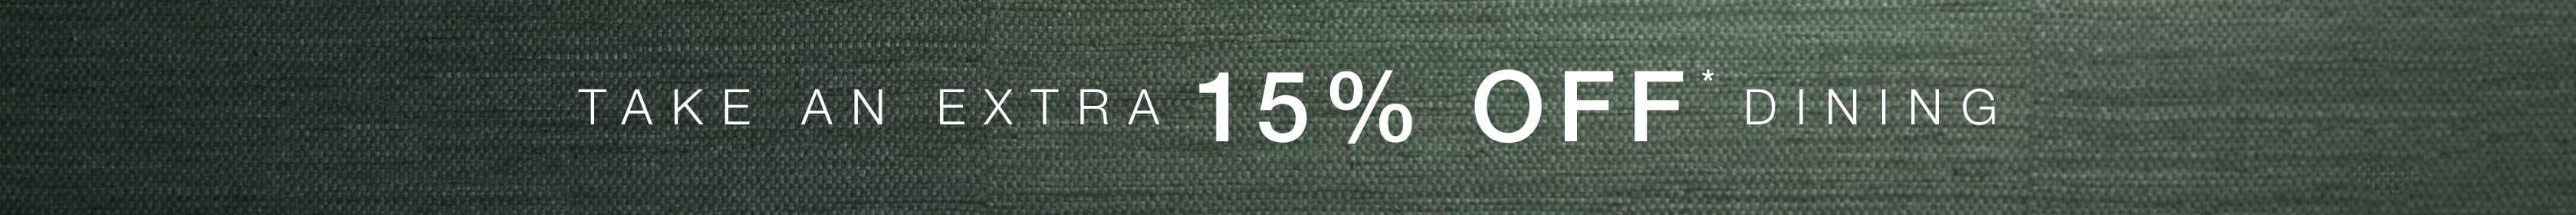 Take an Extra 15% off Dining